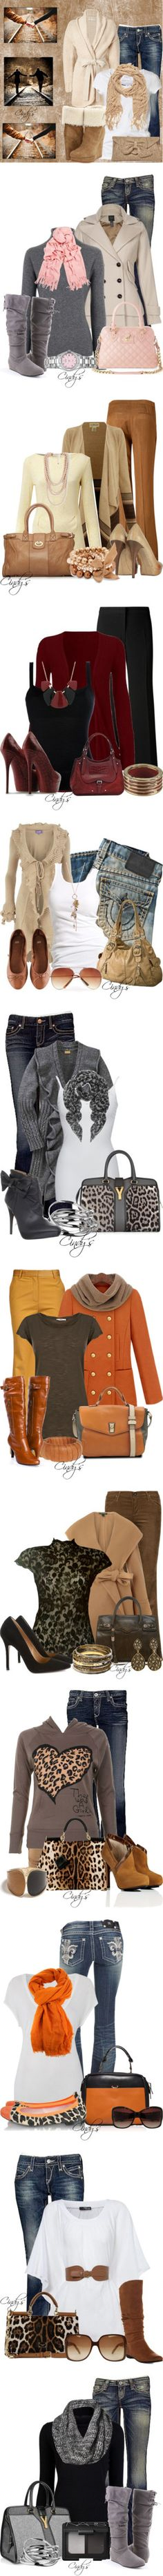 outfits ♥✤ | Keep the Glamour | BeStayBeautiful